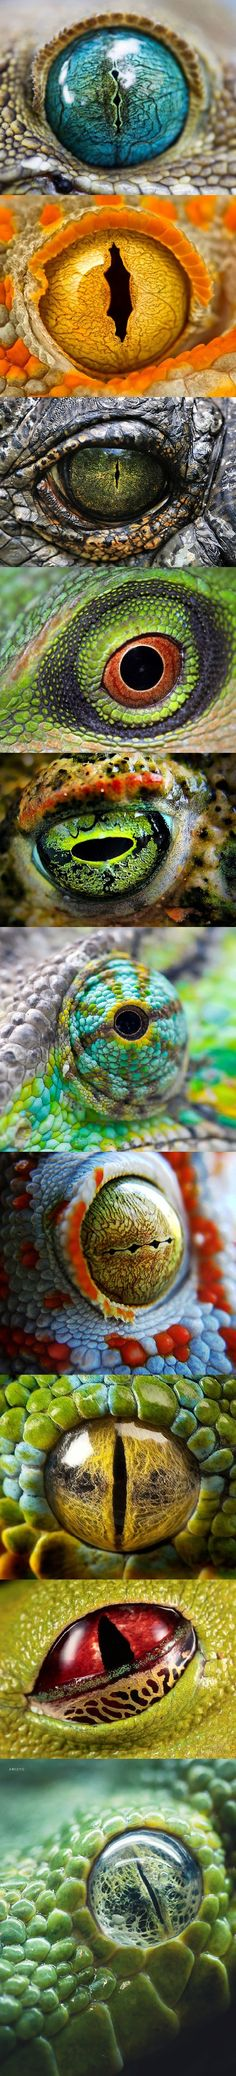 colorful animals | amazing collection | eyes via @lostquilt